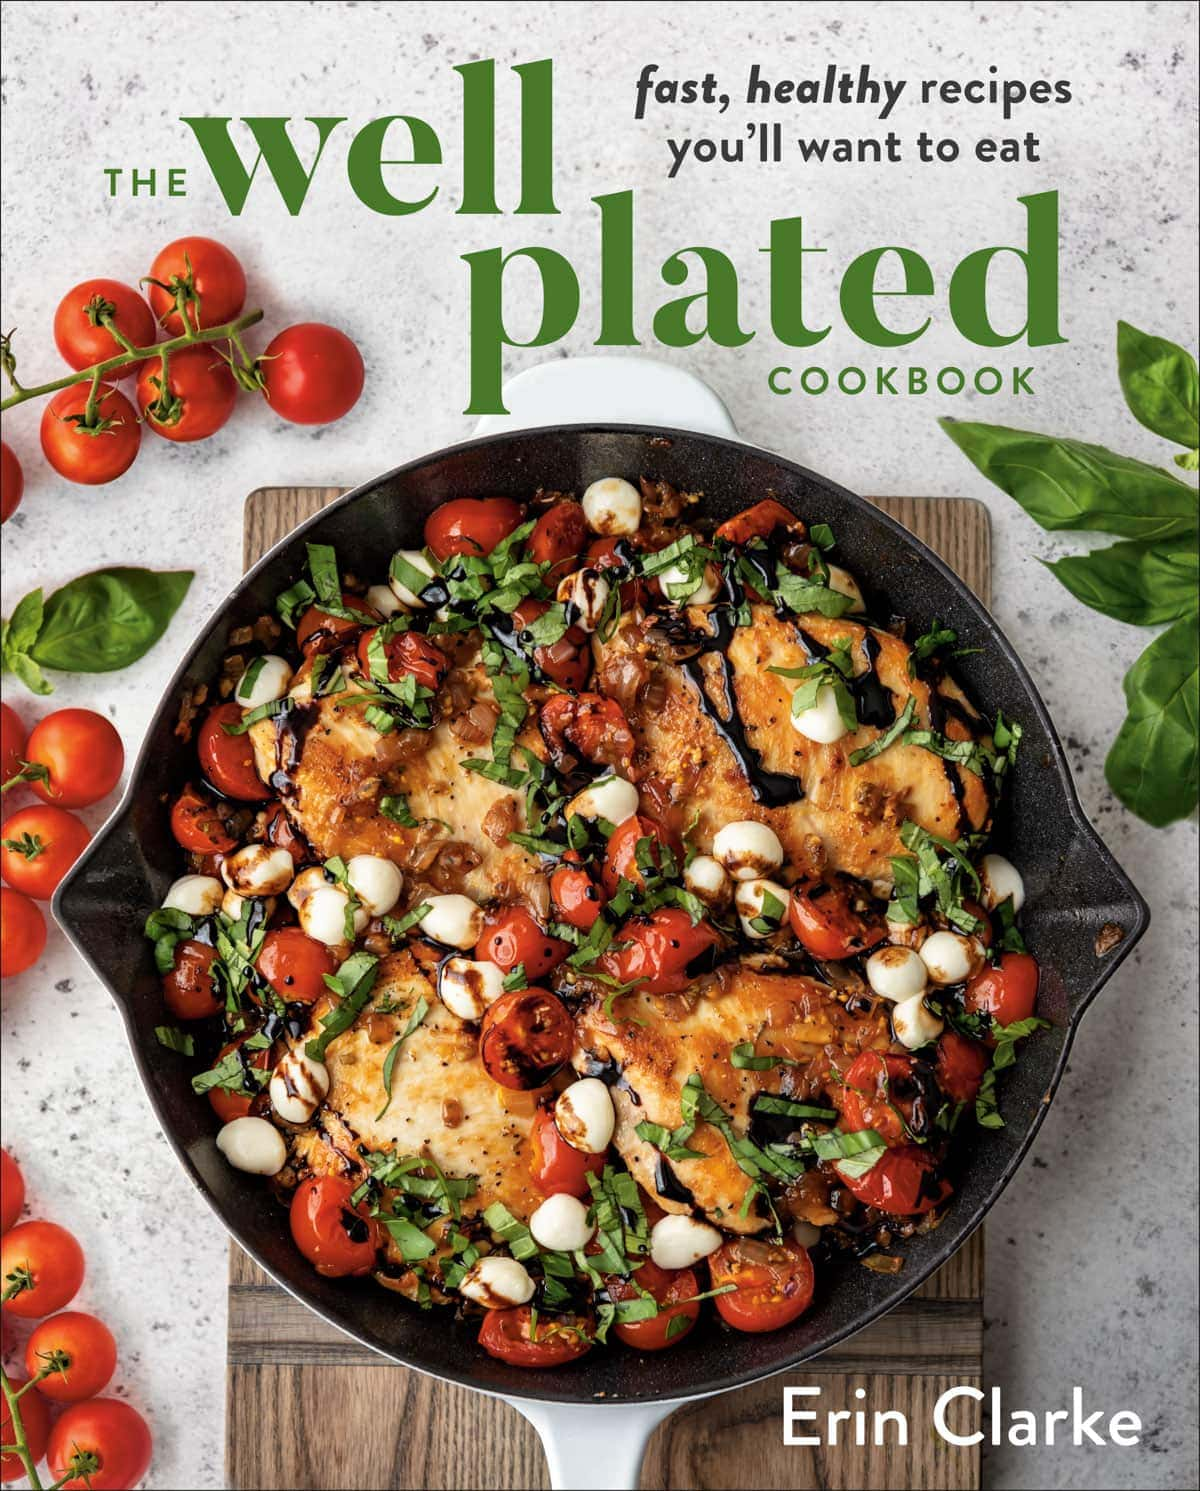 The Cover of the Well Plated Cookbook